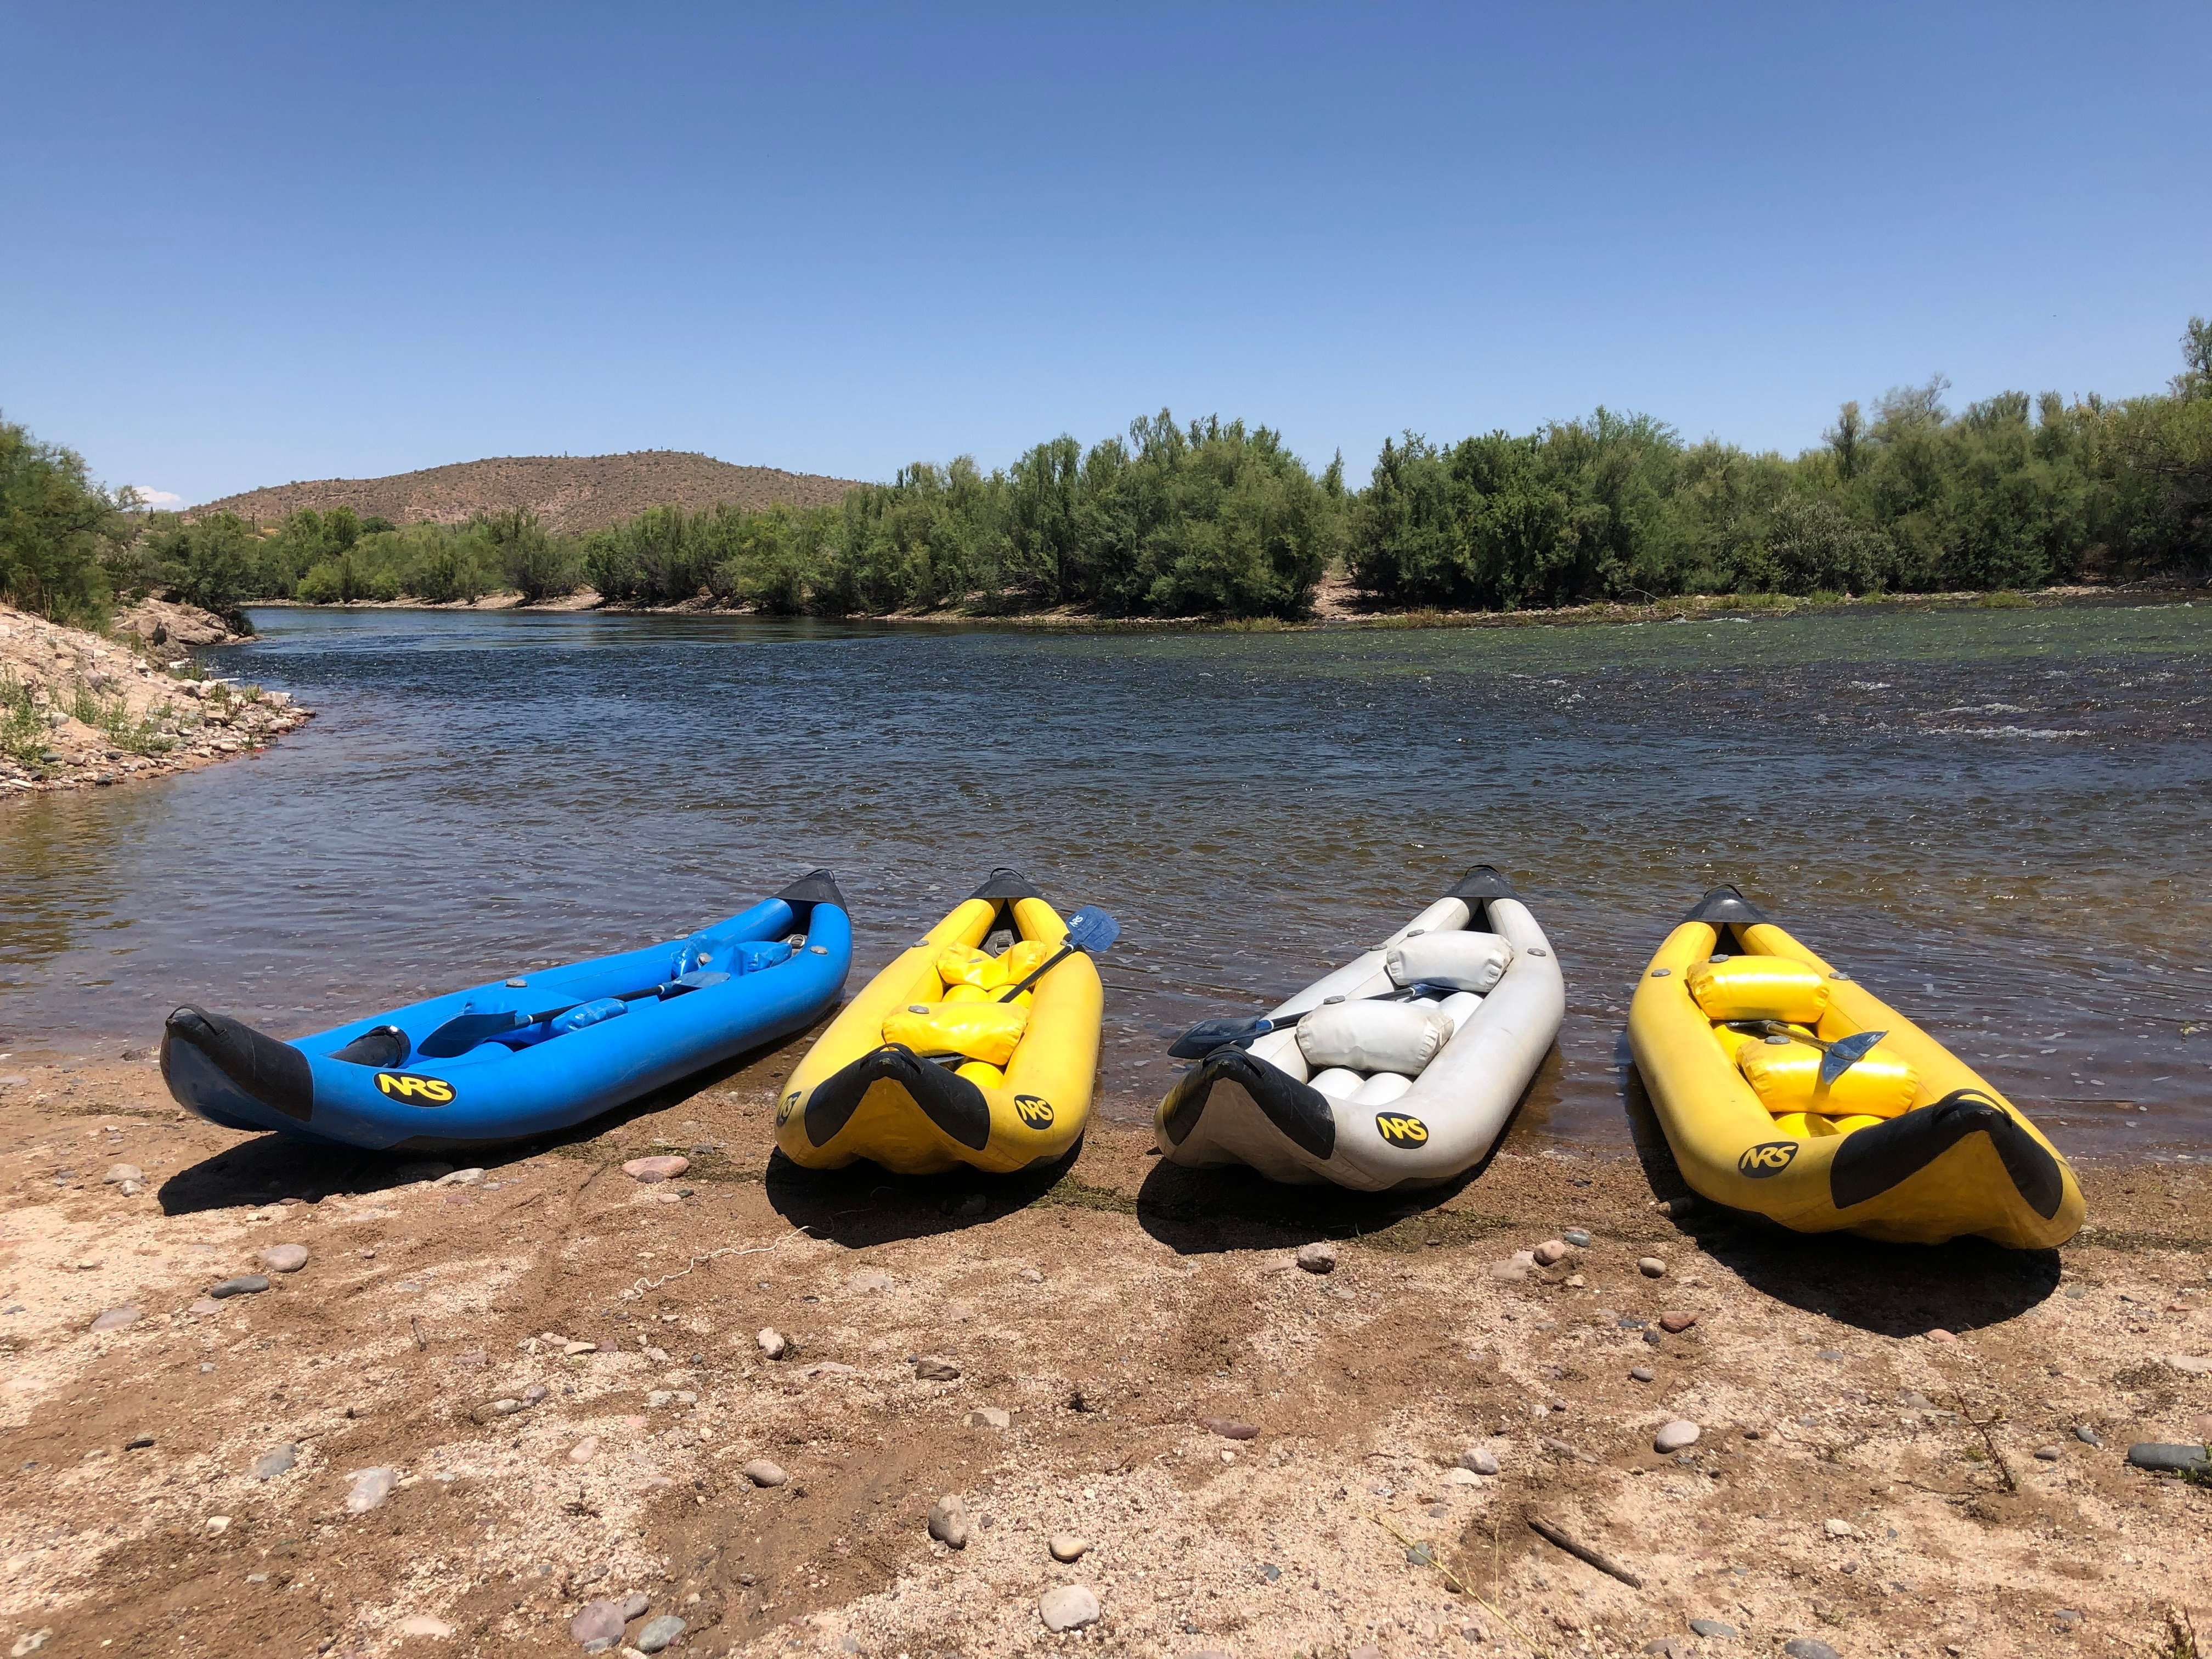 Multi colored kayaks rest on the banks of a river. - Kayaking gear essentials